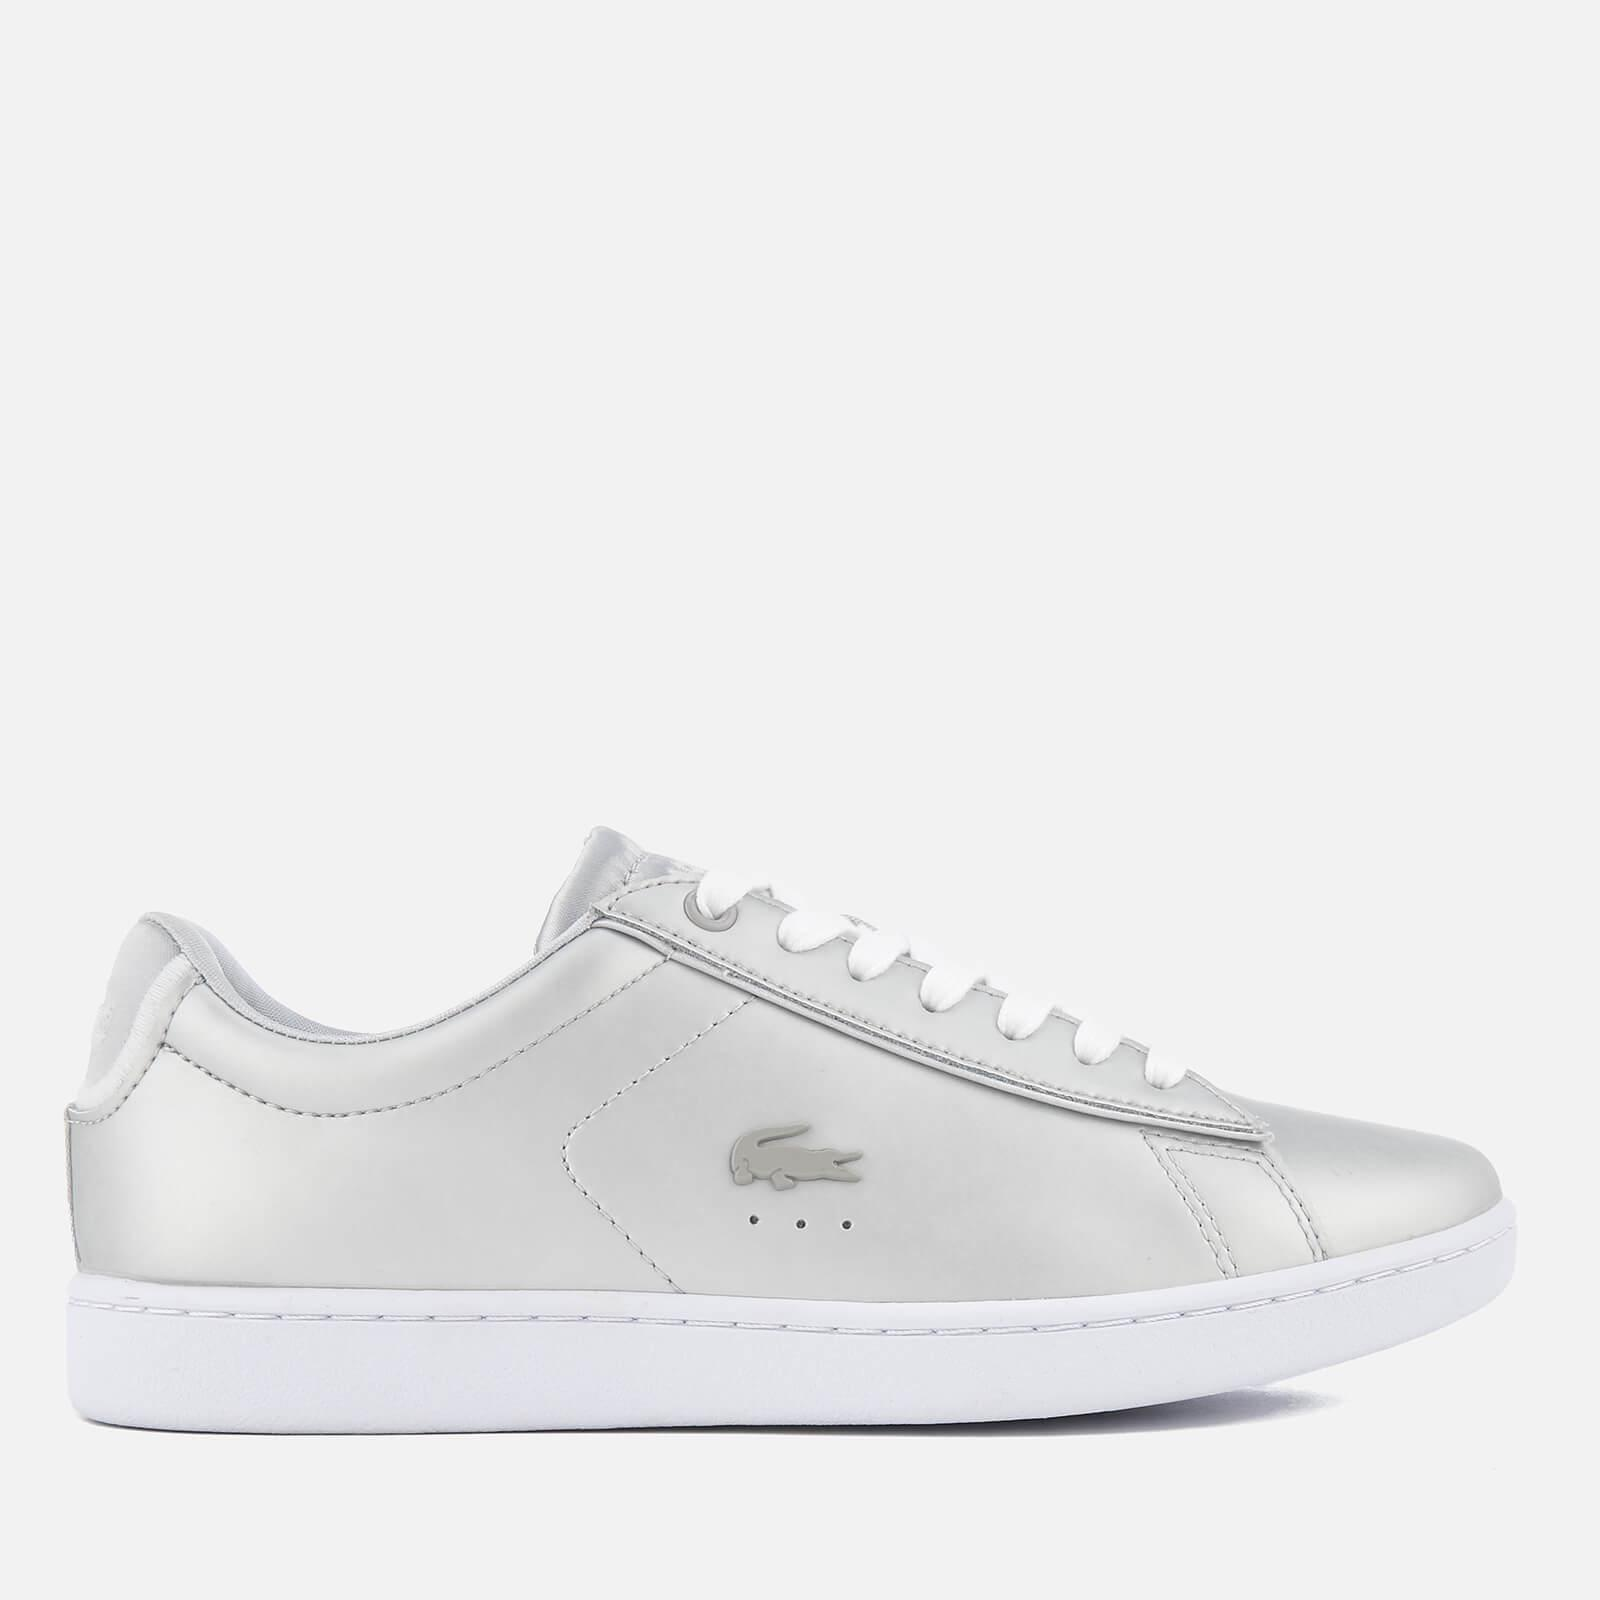 720c55a527a1e9 Lacoste. Women s Metallic Carnaby Evo 118 1 Leather Trainers. £80 £40 From  AllSole